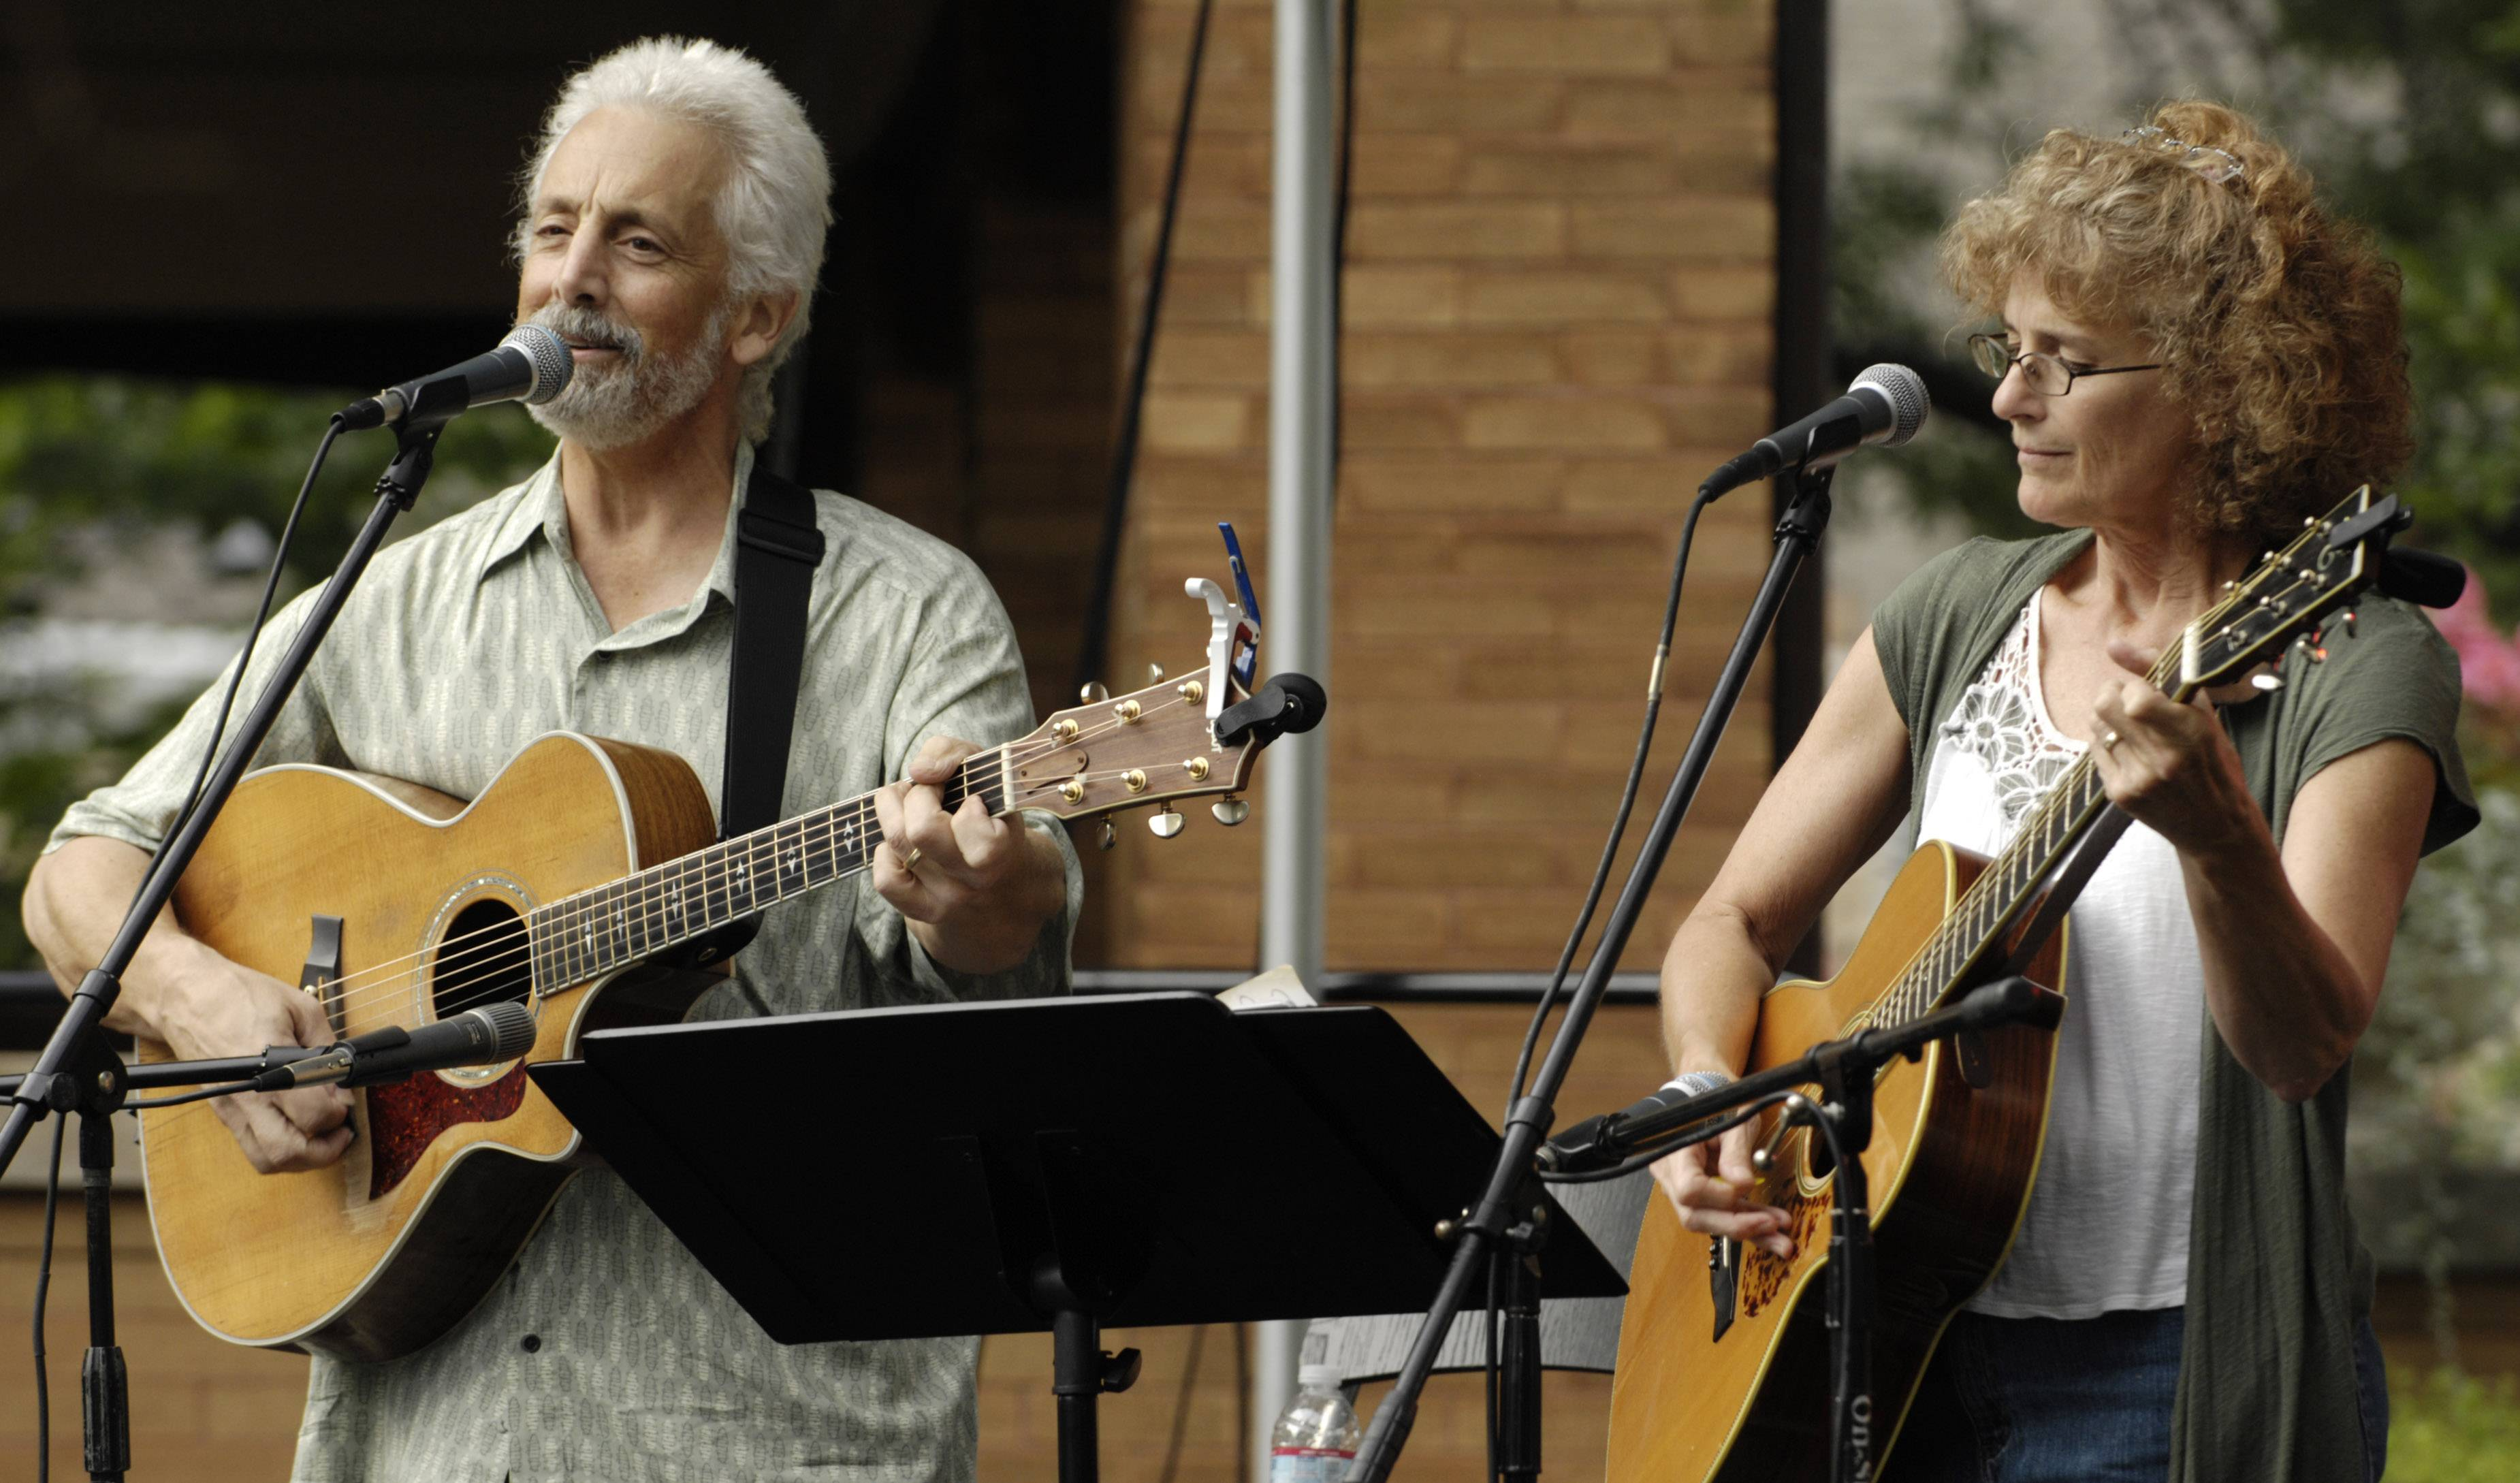 Rich Prezioso and Jacquie Manning of Small Potatoes perform Friday during Irish Fest in Arlington Heights.